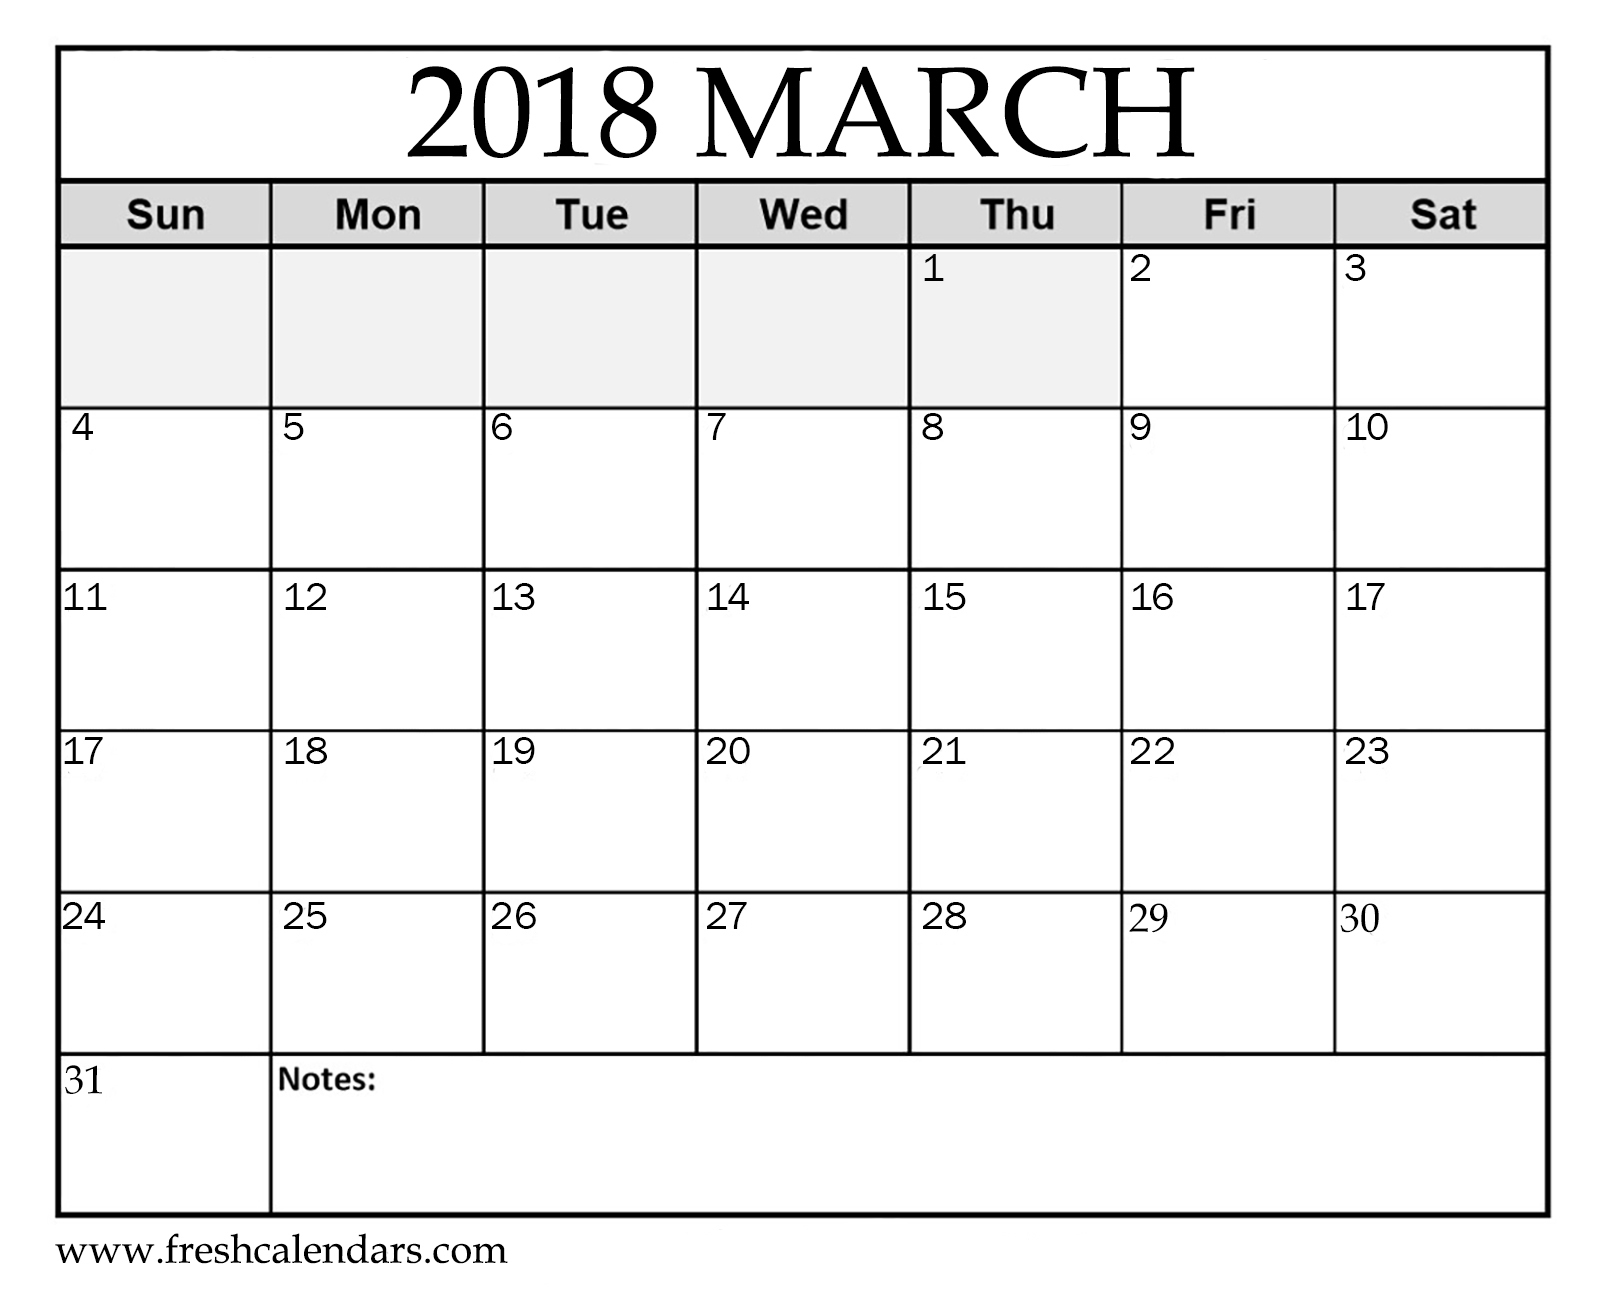 March 2018 Printable Calendars - Fresh Calendars - Free Printable March Activities